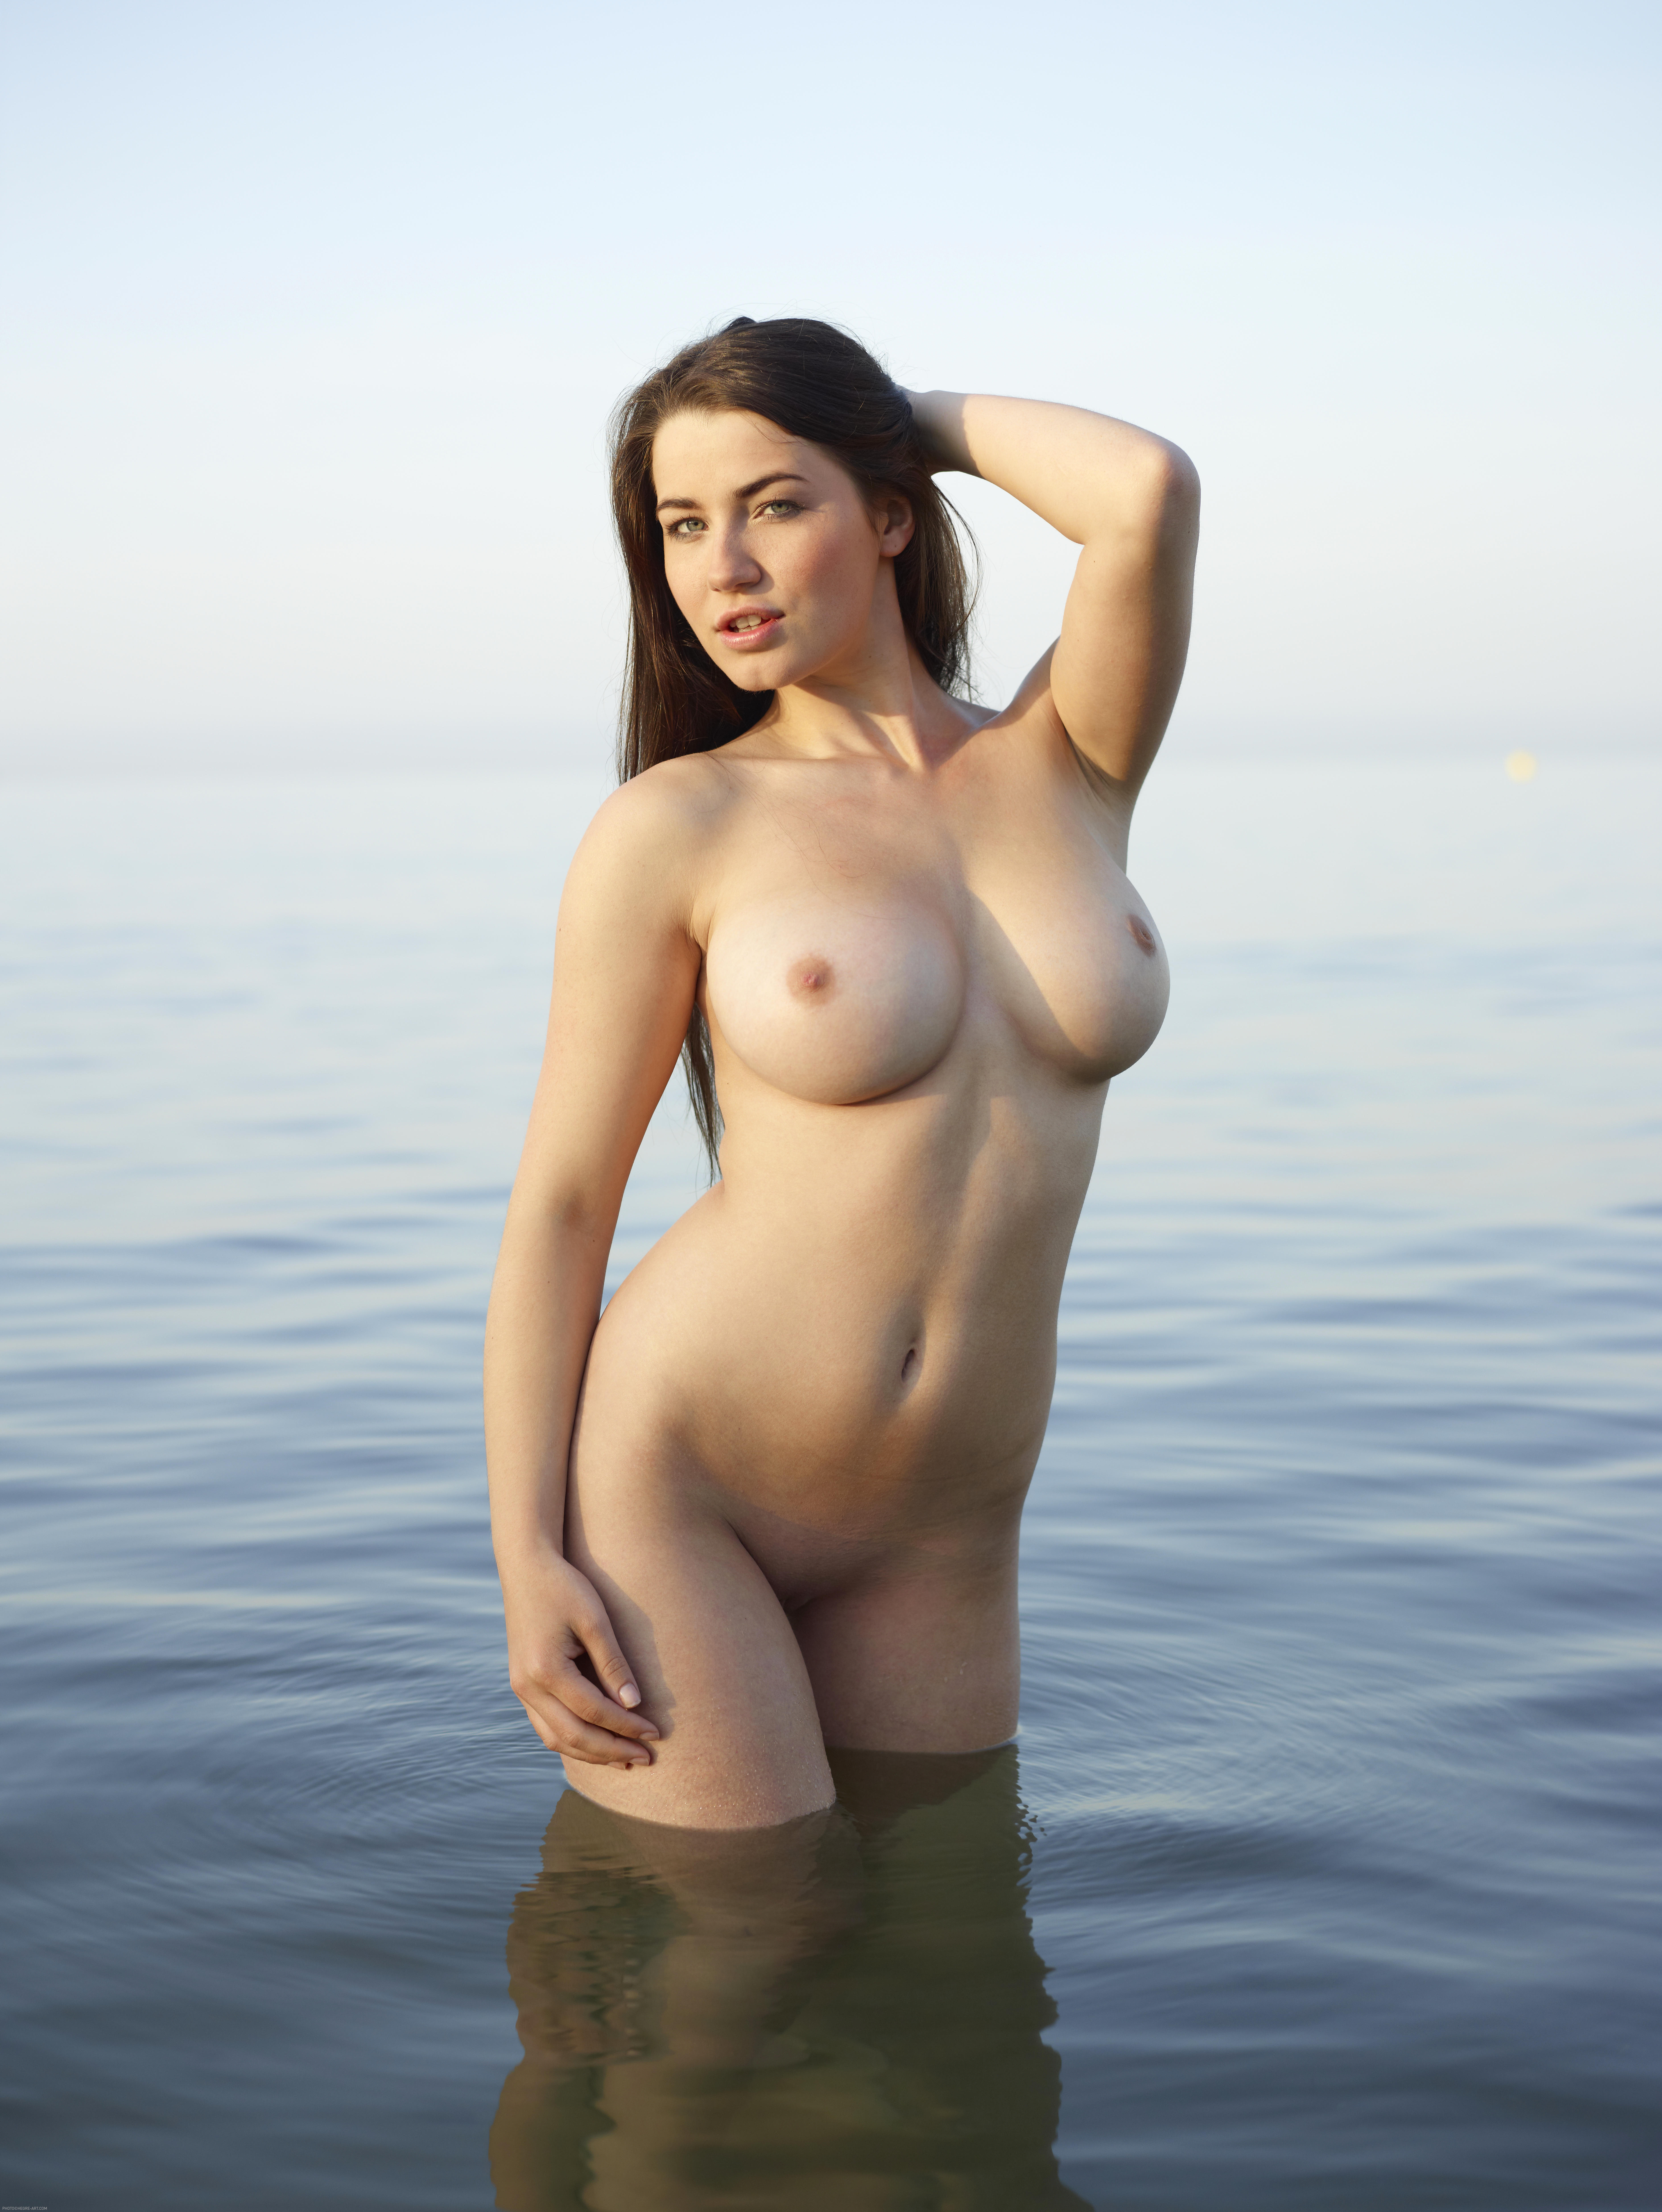 best-nude-photos-high-quality-boobs-tits-pussy-mix-vol3-80